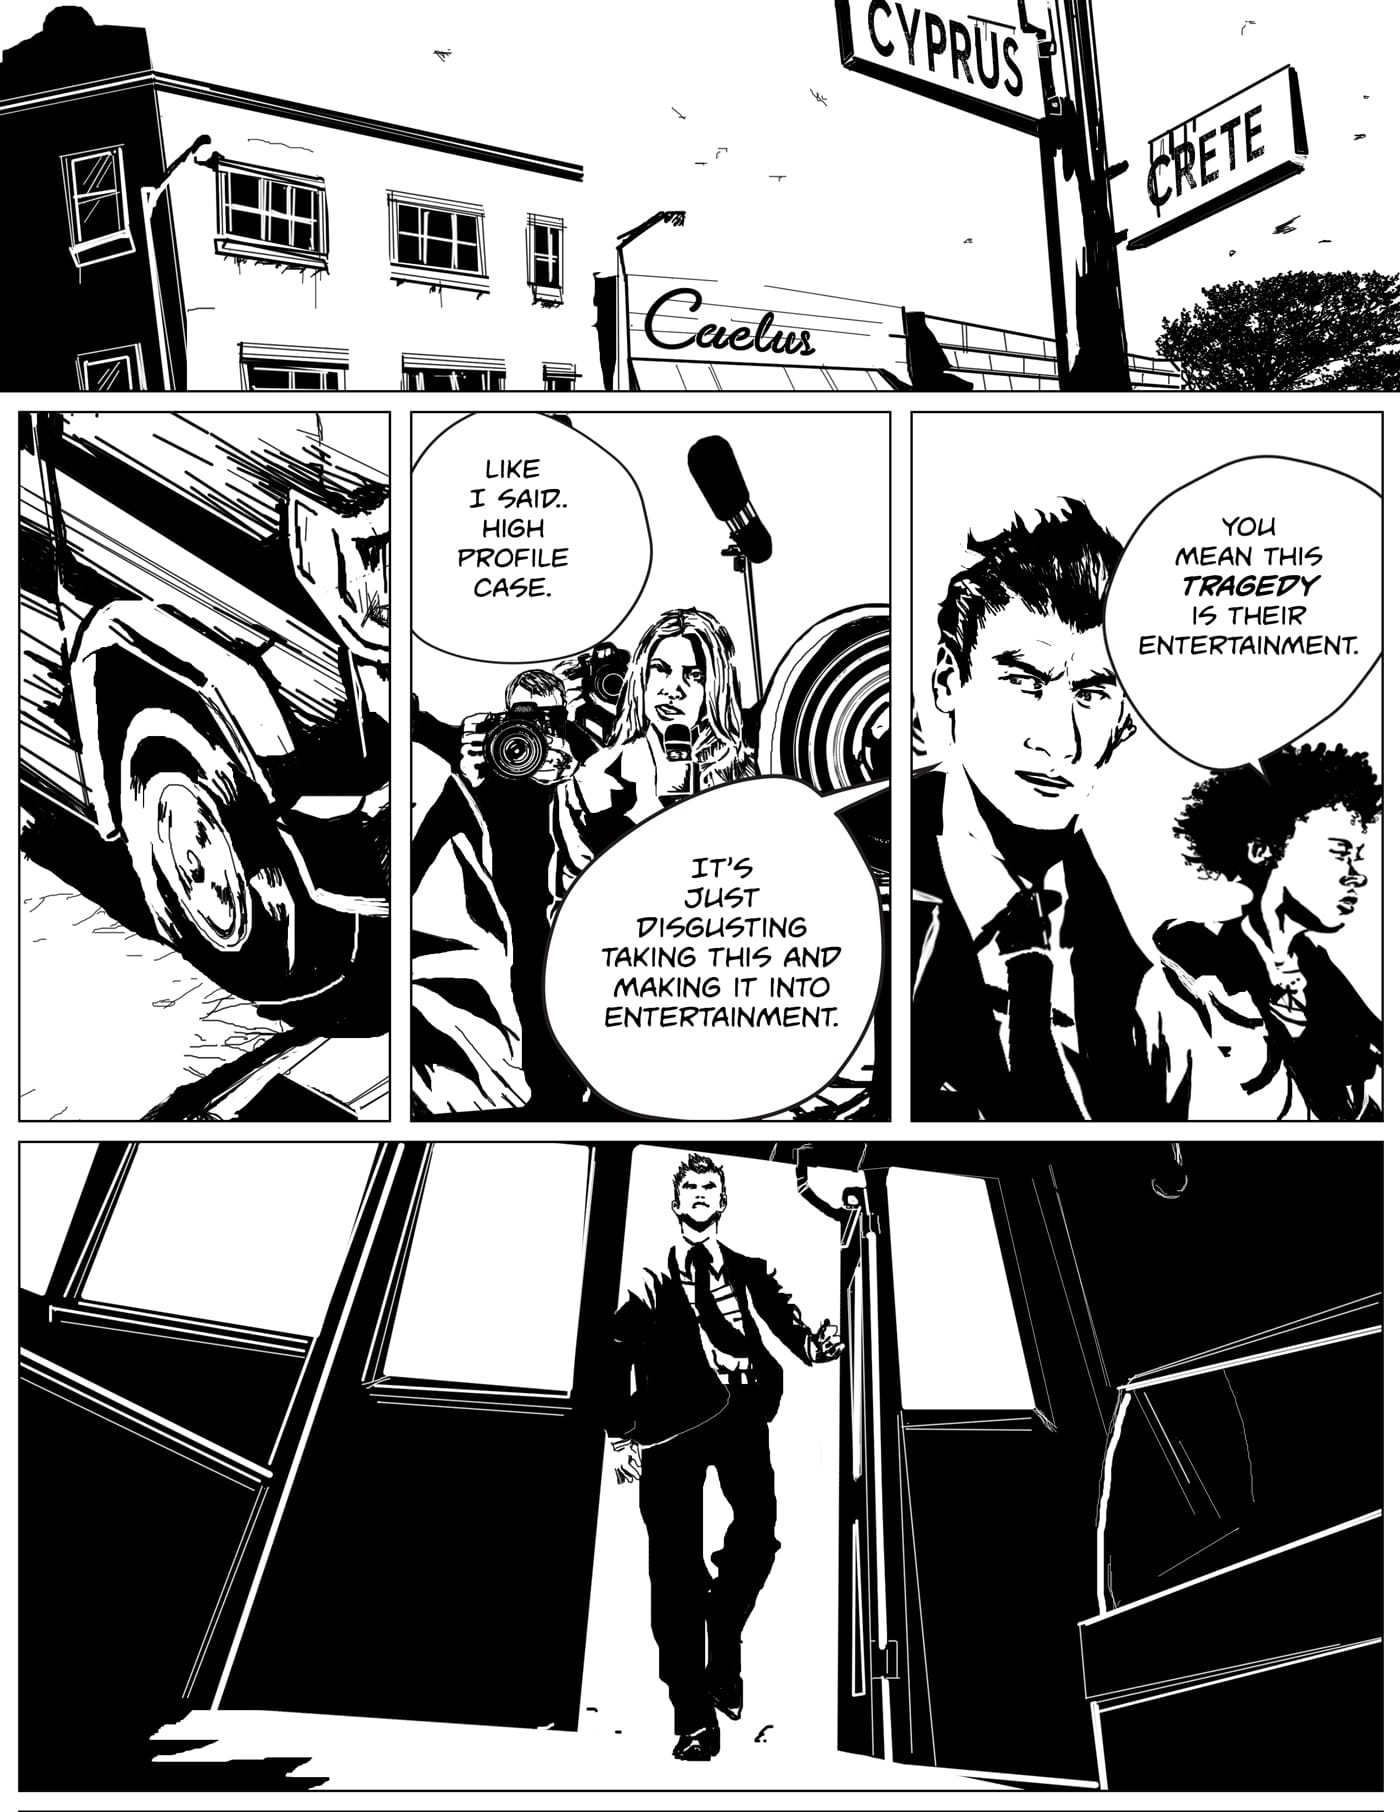 Children of Kronos comic page seven of Chapter One Demeter, detective Romero and Tompkins arrive on the crime scene of the Caleus butchery shop. Outside the butchers shop is filled with tons of media and news crew.